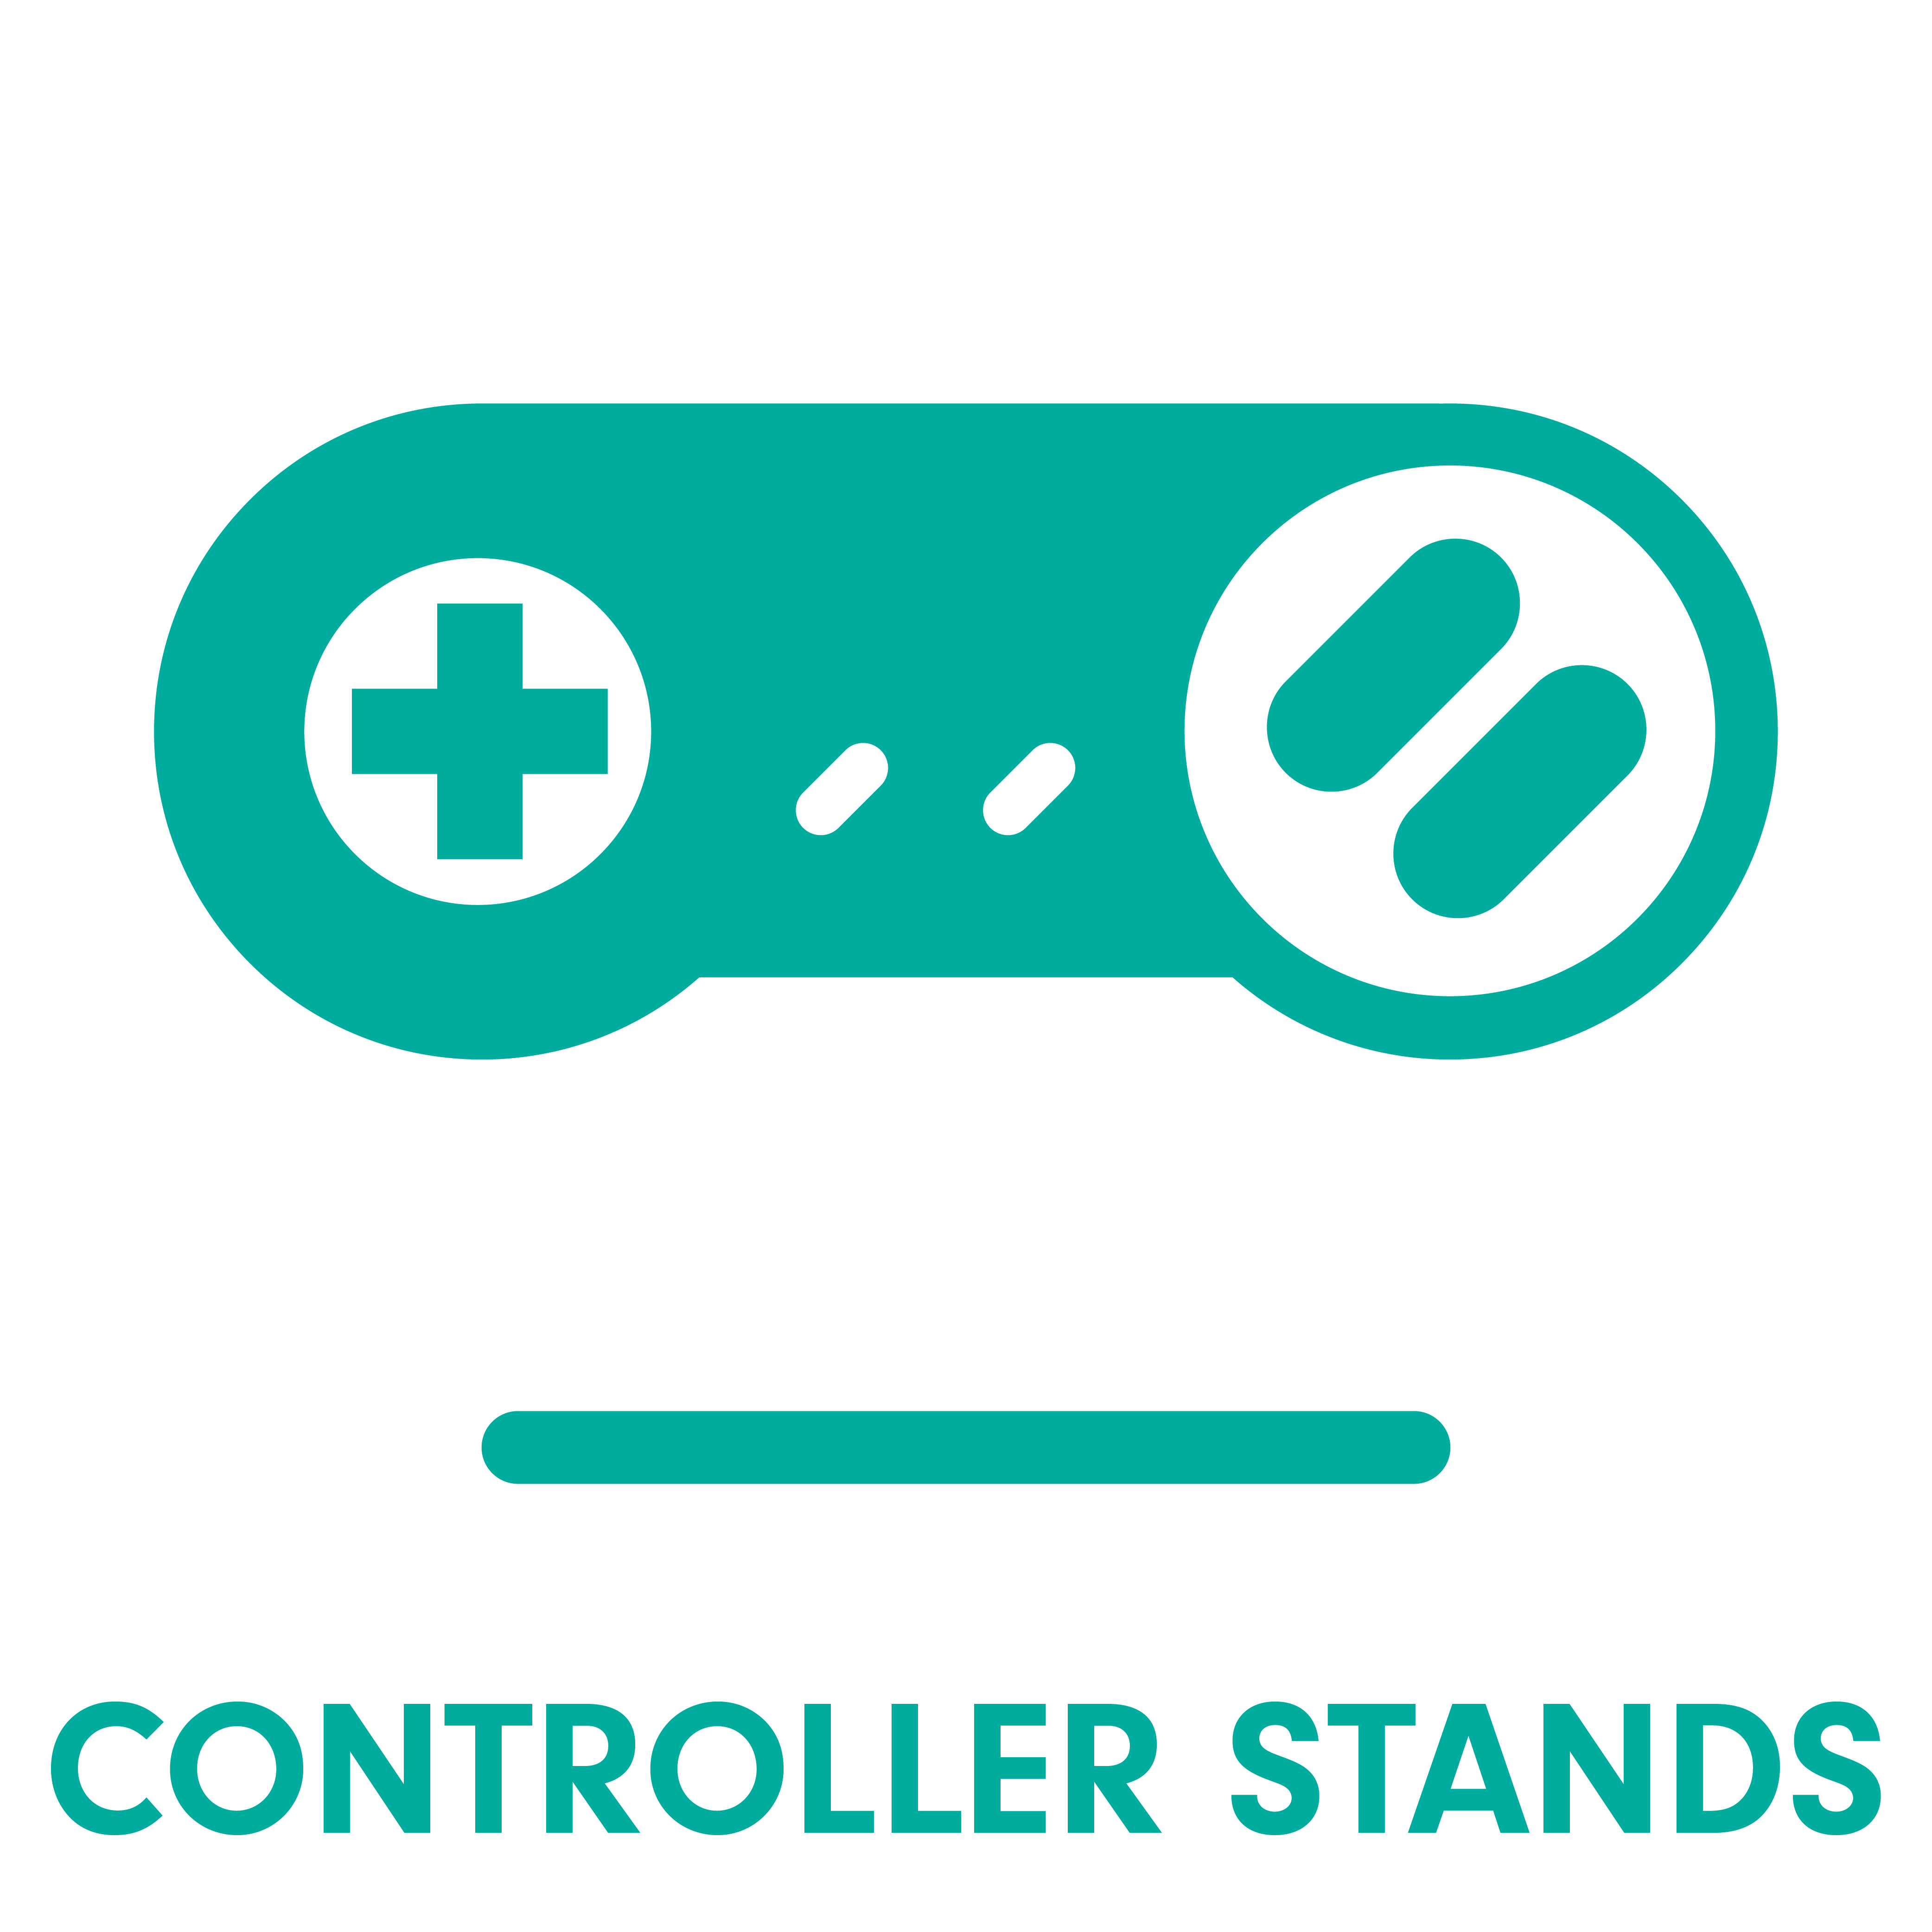 Controller Stands category icon